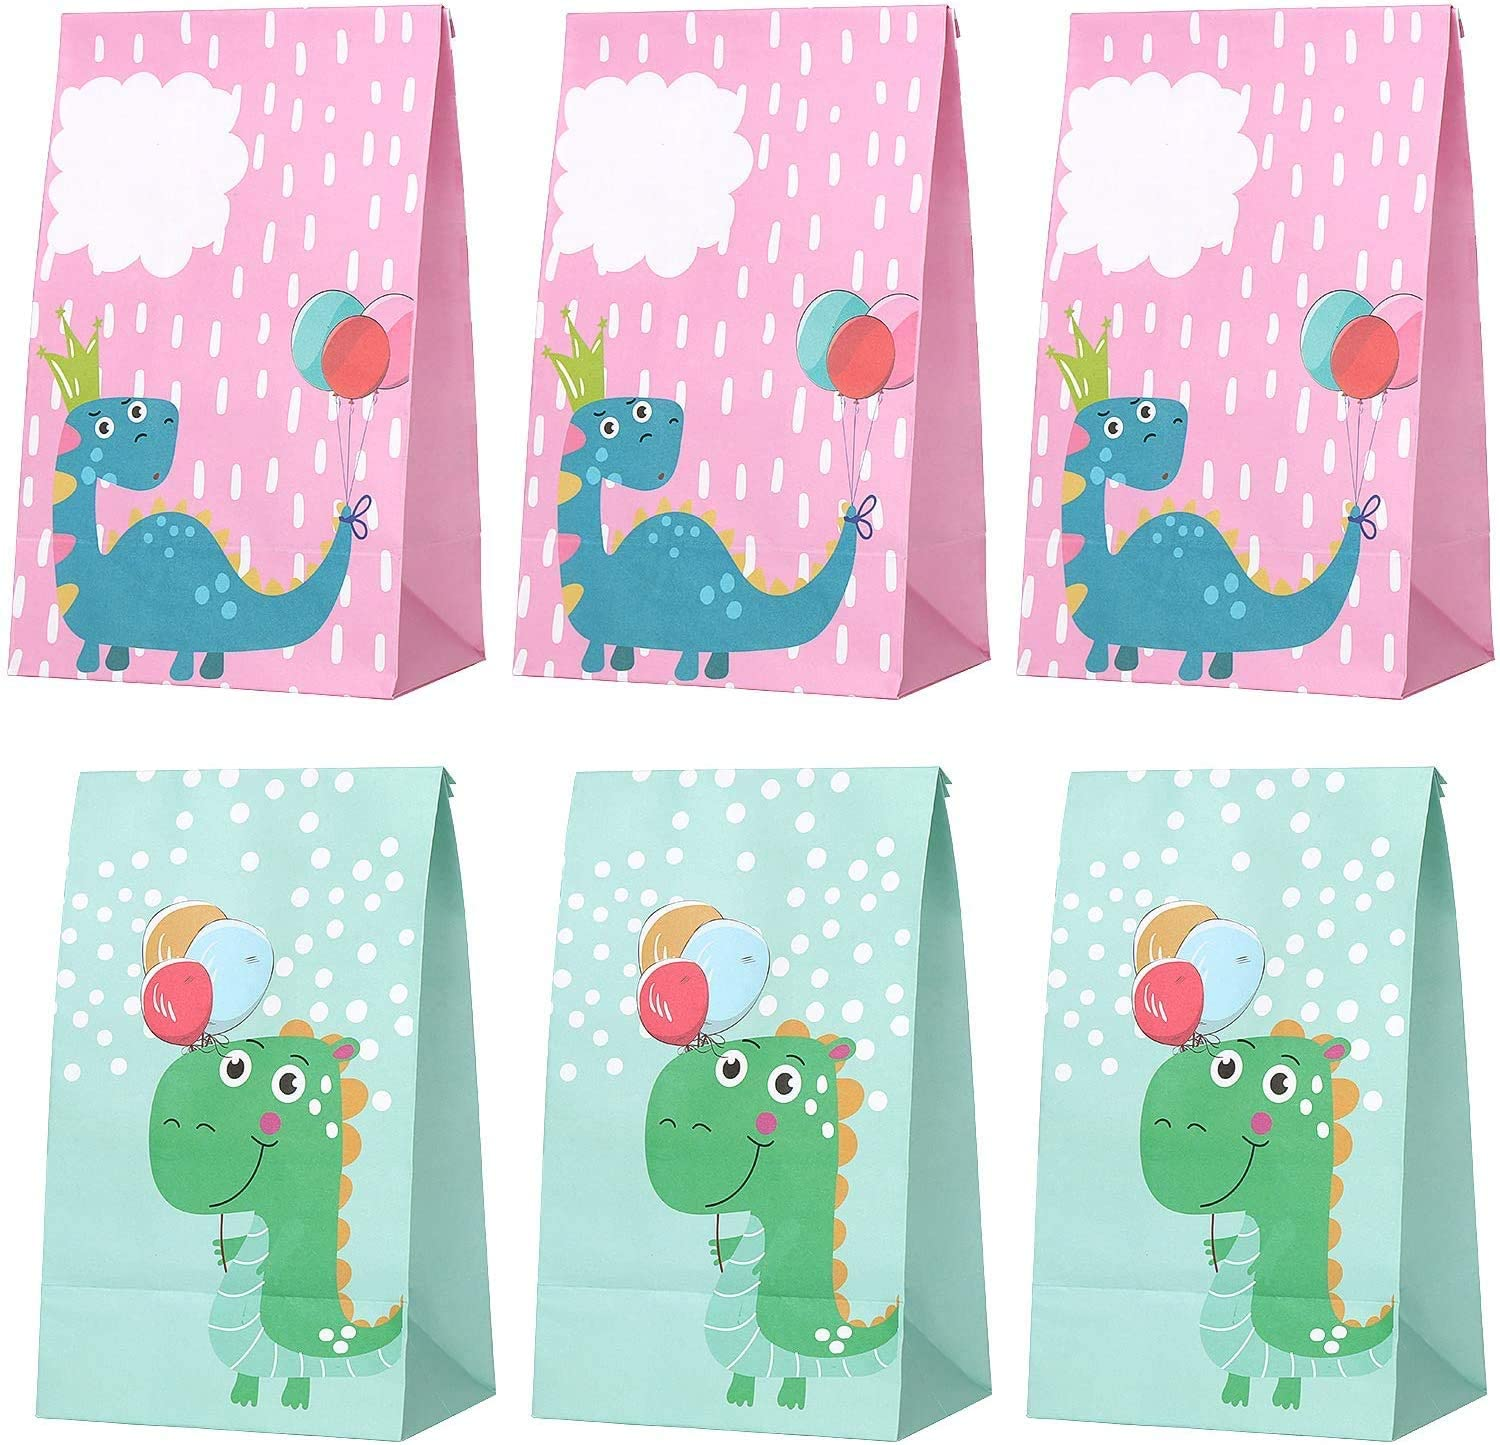 DIYASY 24 Pcs Dinosaur Goodie Bags,Dino Theme Party Candy Bags Cute Dinosaur Gift Bags for Kids Birthday and Baby Shower Supply